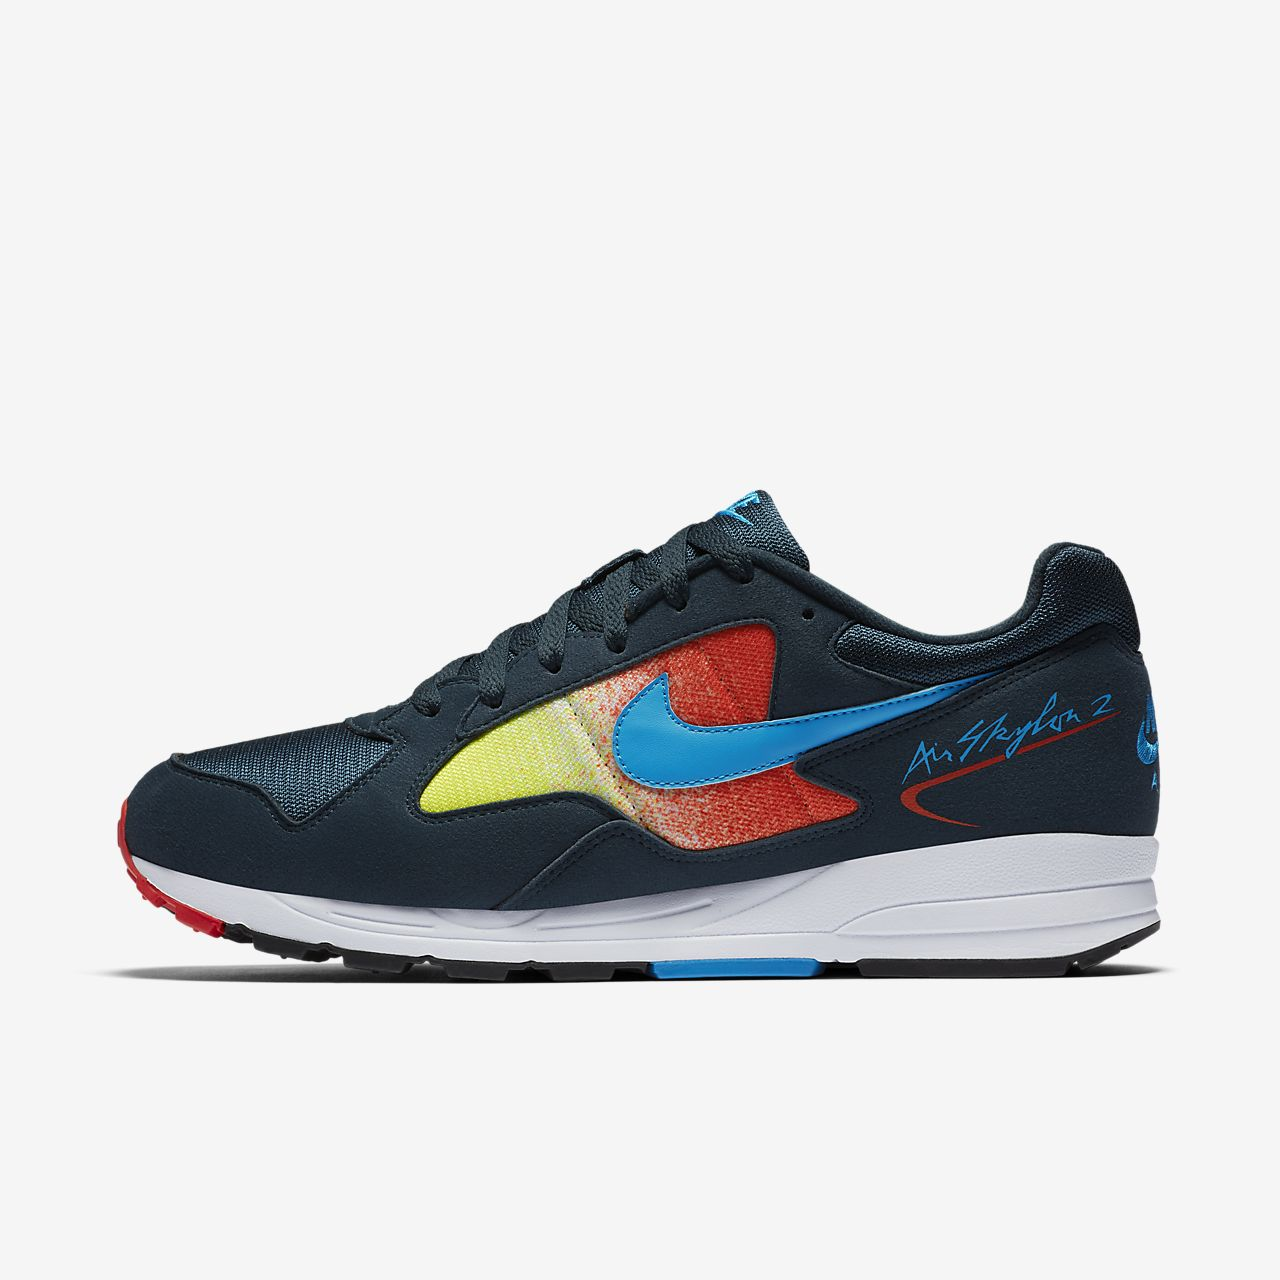 a275bbe64b1838 Nike Air Skylon II Men s Shoe. Nike.com